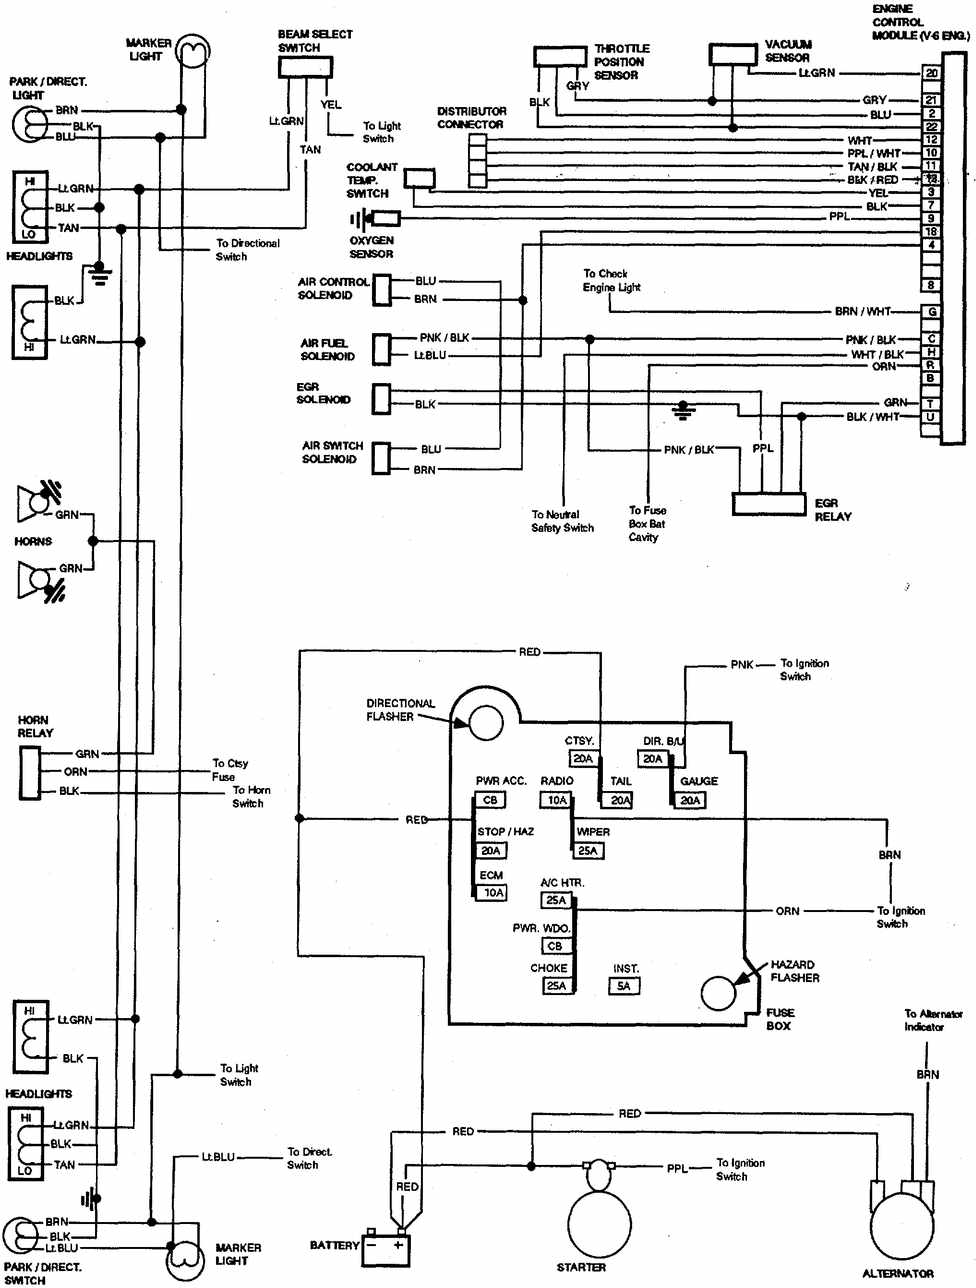 wiring diagram for a 2007 malibu